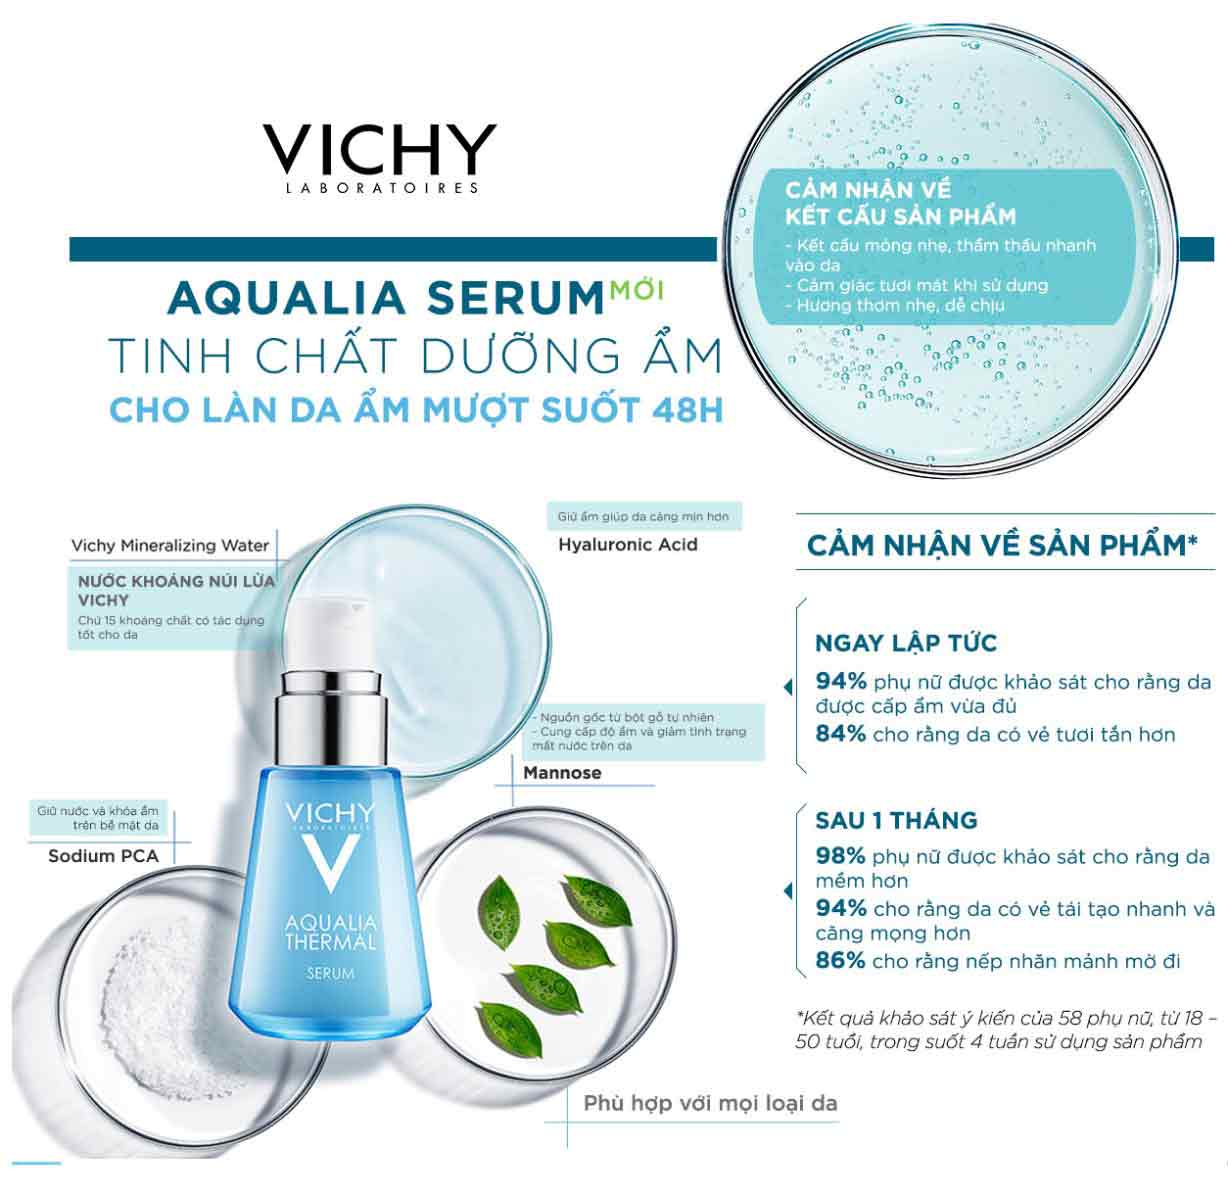 Aqualia Thermal Serum Vichy 30ml